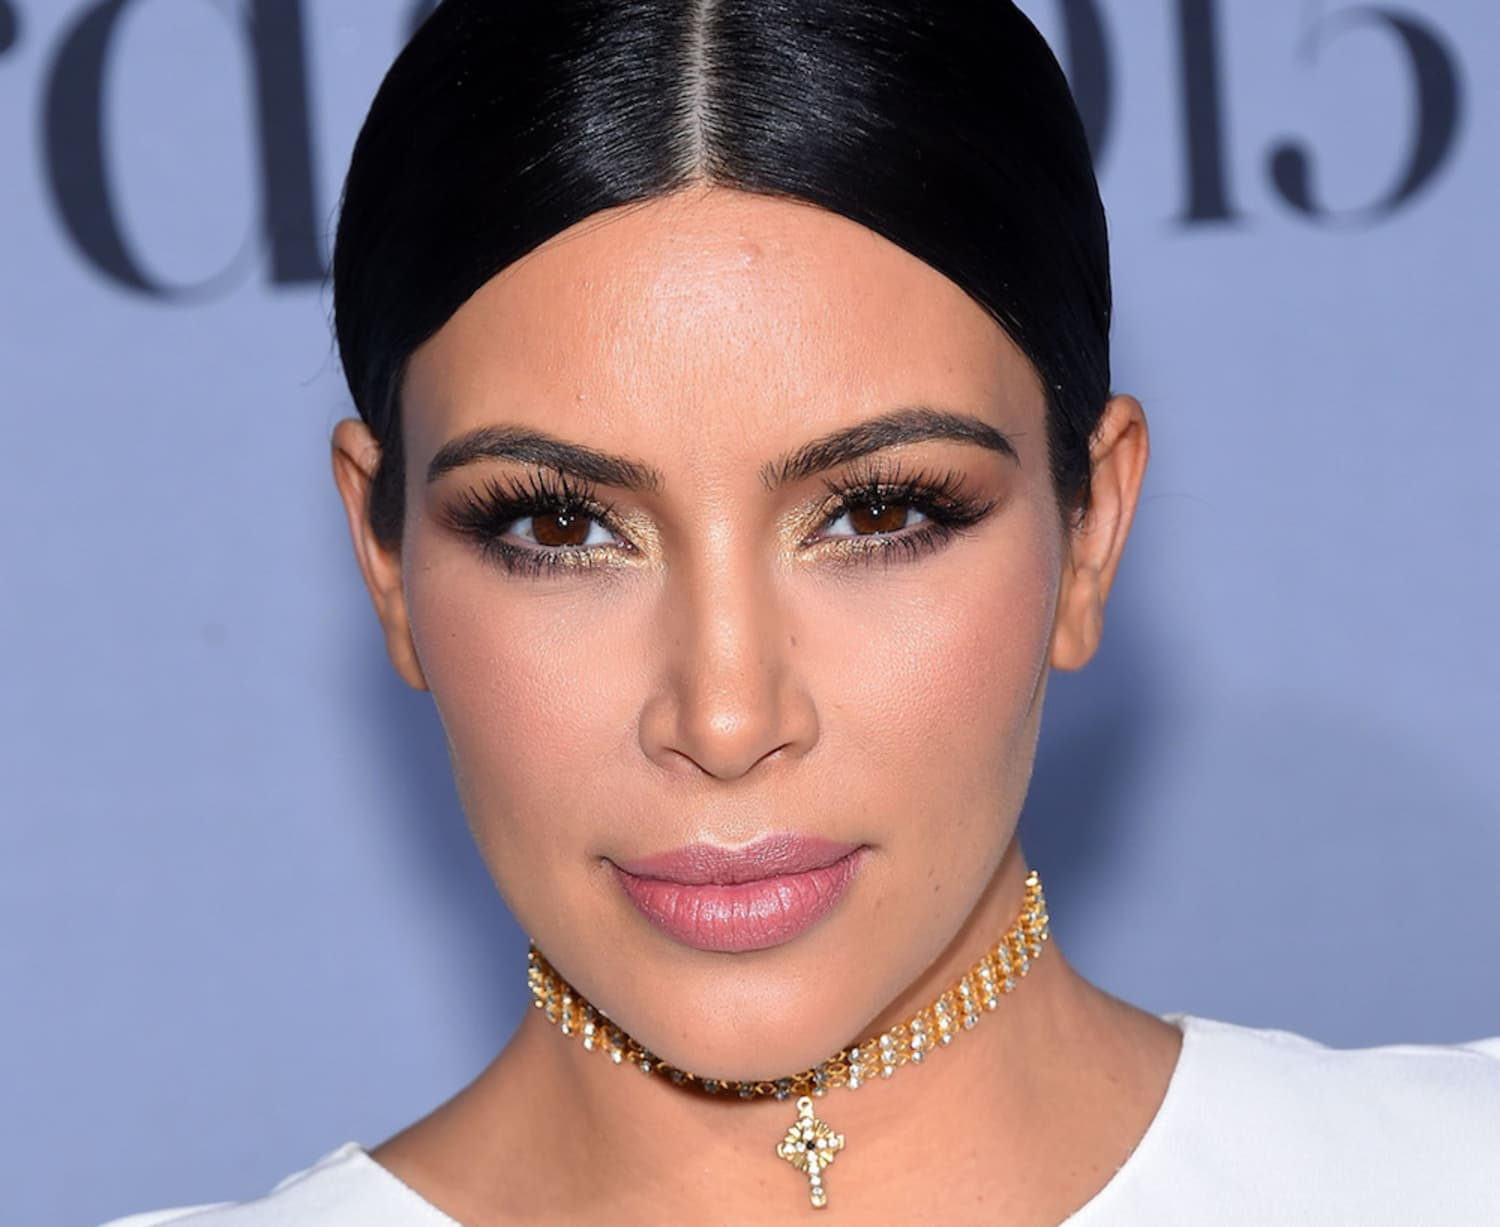 Kim Kardashian's Tarantula Halloween Decor is An Arachnophobe's Nightmare